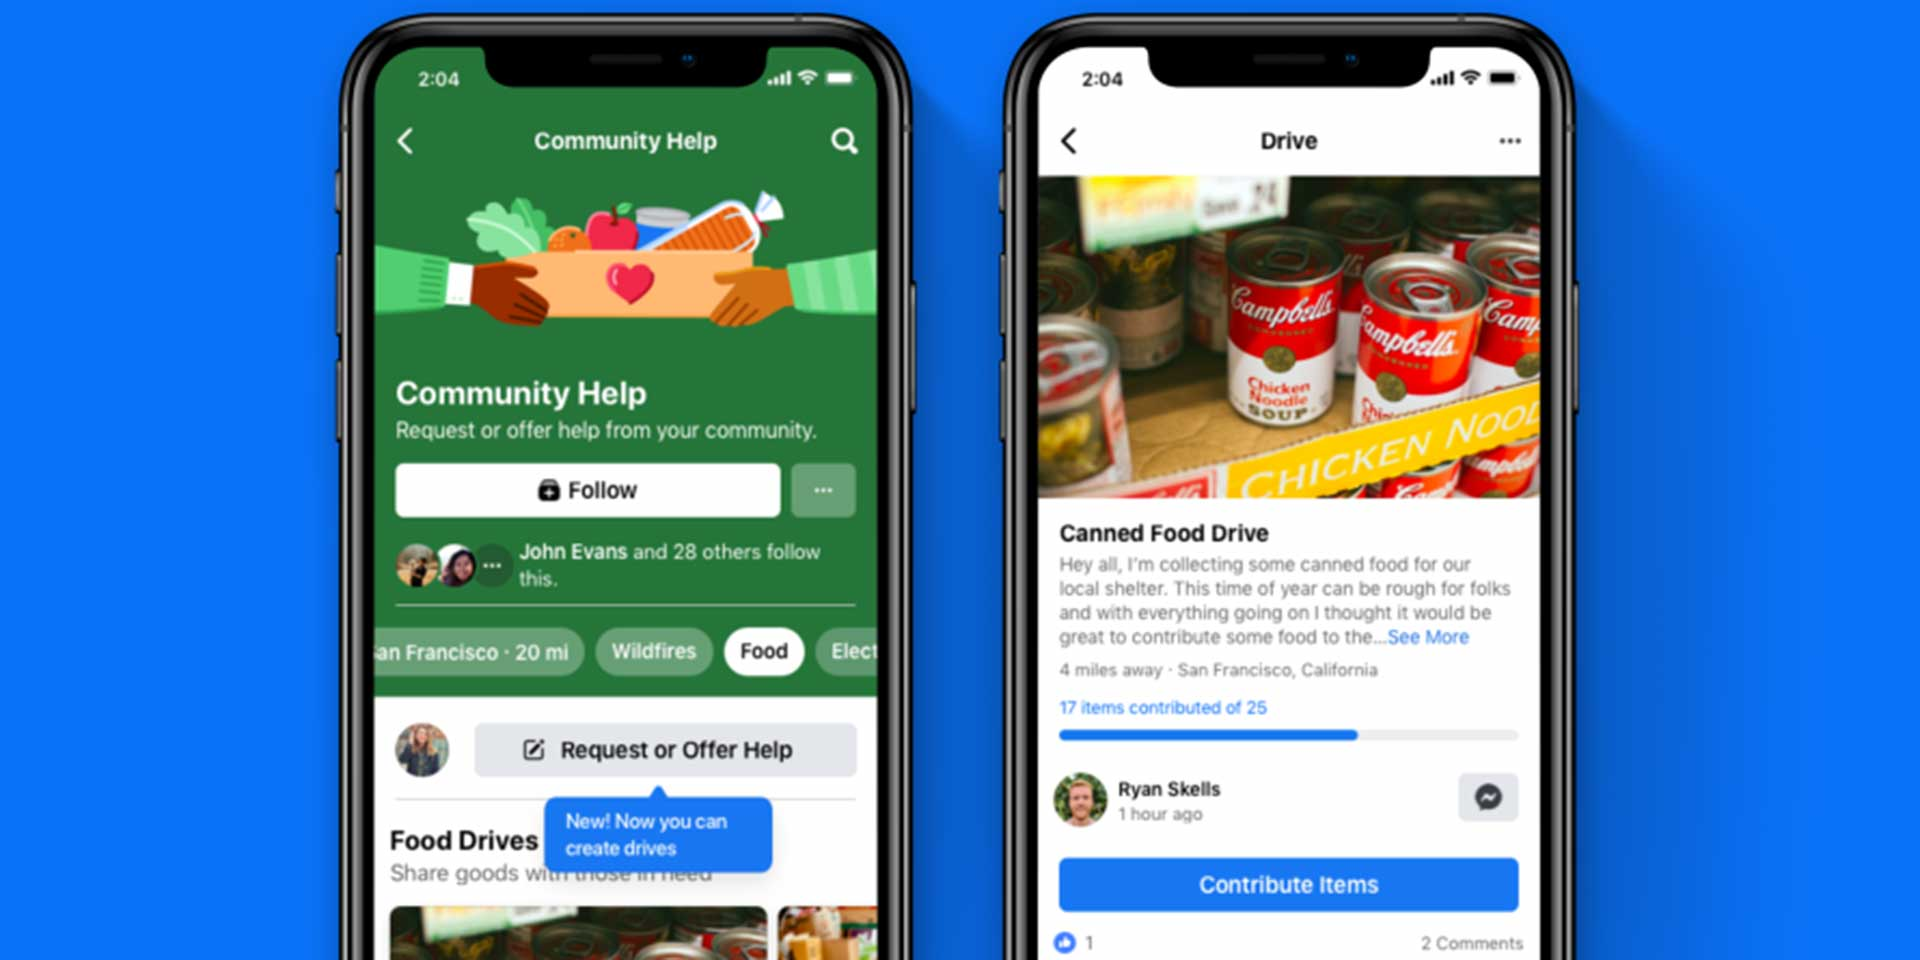 Facebook Drives Wants to Help You to Help Others | Tech.co